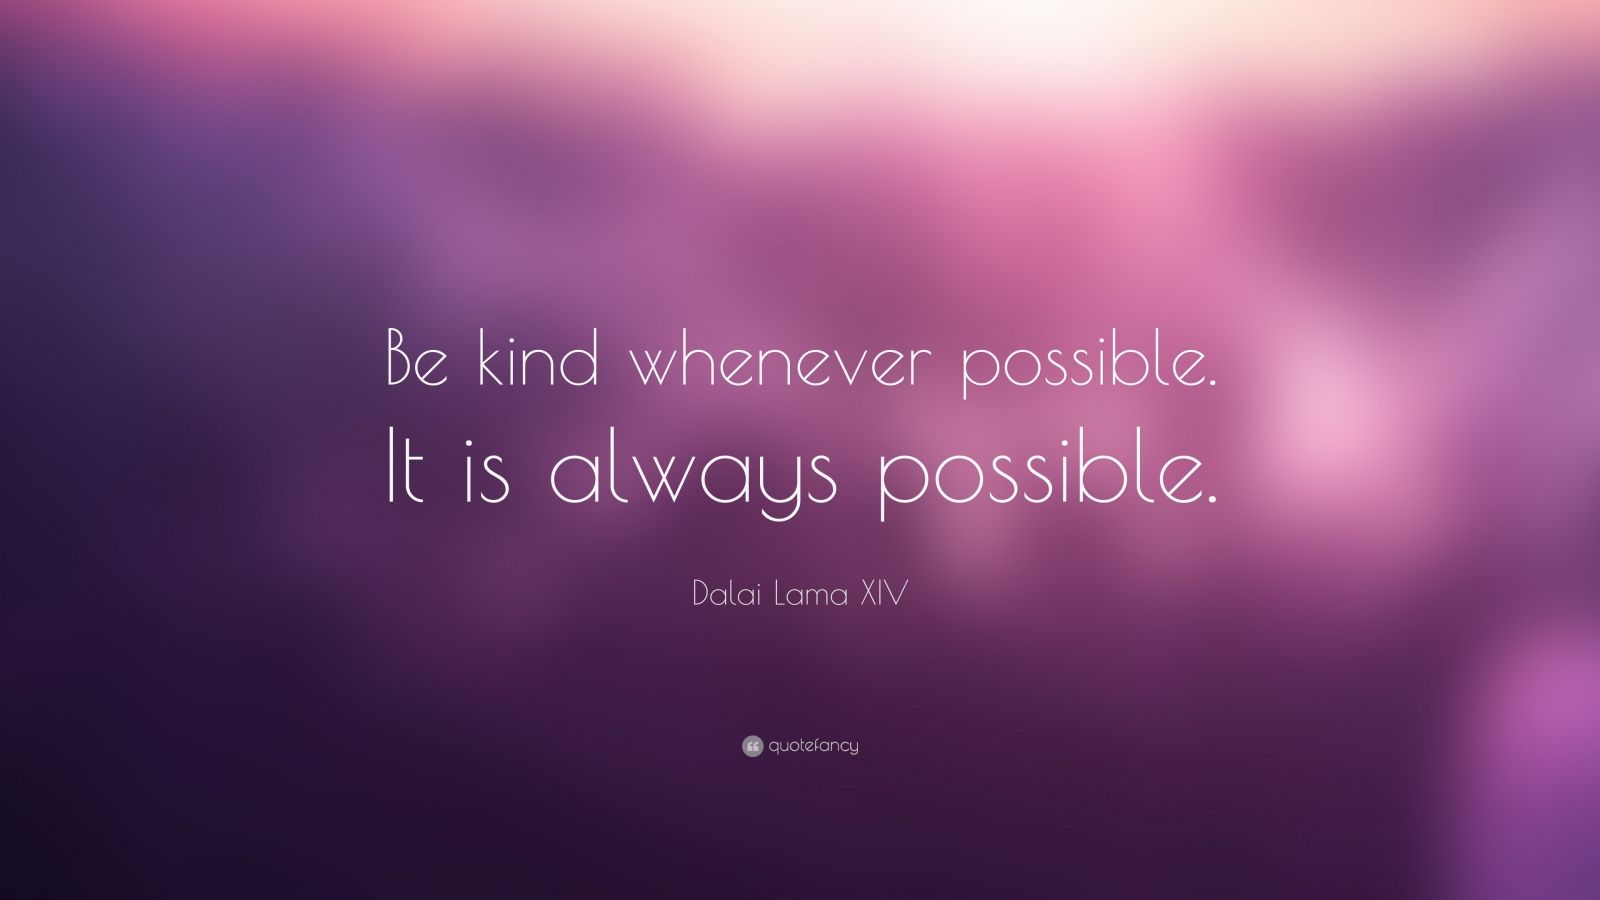 I Love Myself Quotes Wallpapers Dalai Lama Xiv Quote Be Kind Whenever Possible It Is